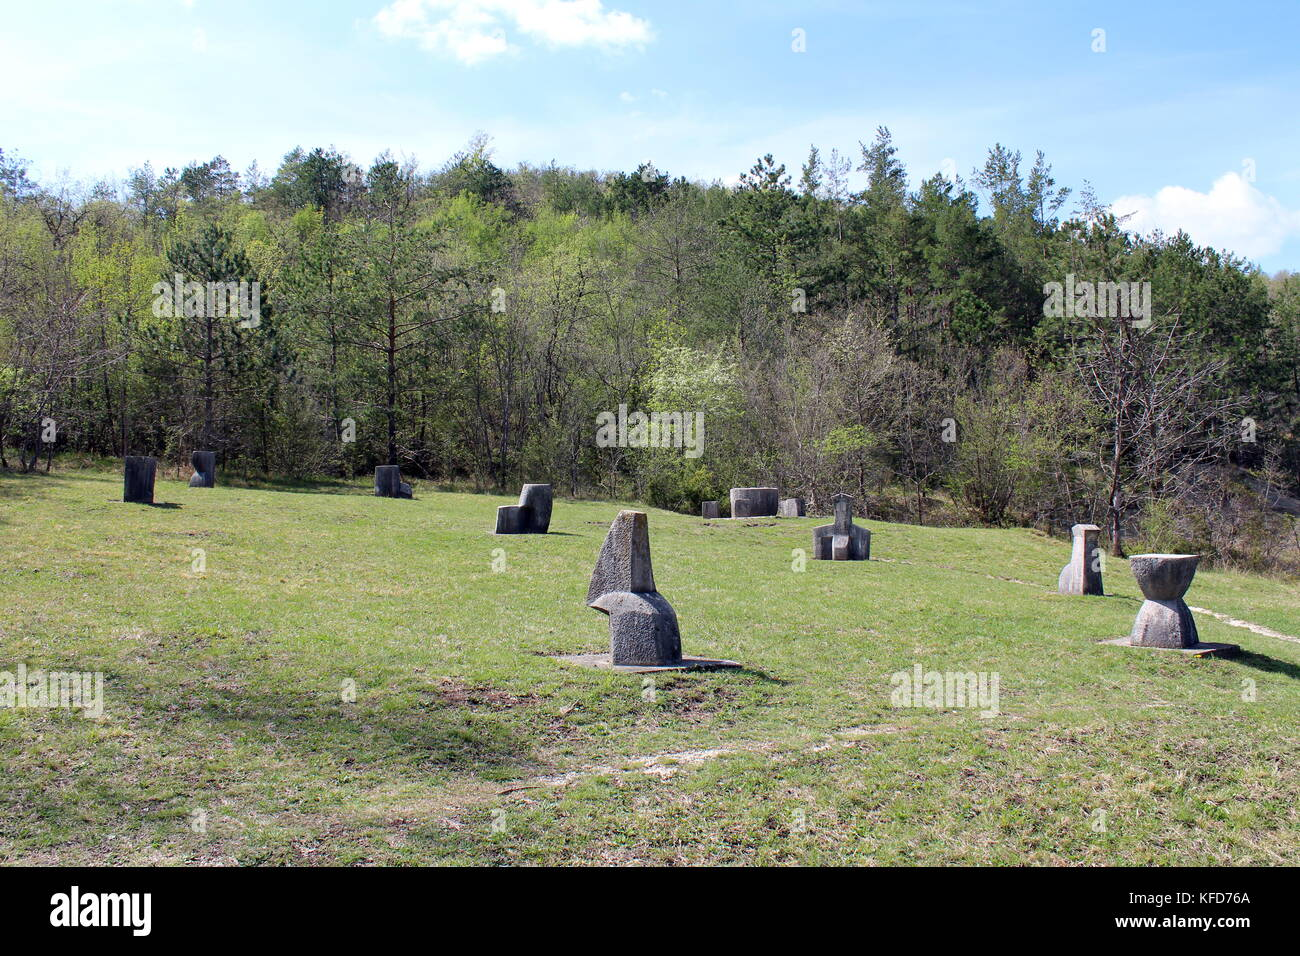 Glagolitic letters made from stone called Uspon Istarskog razvoda scattered over large grass area and surrounded - Stock Image